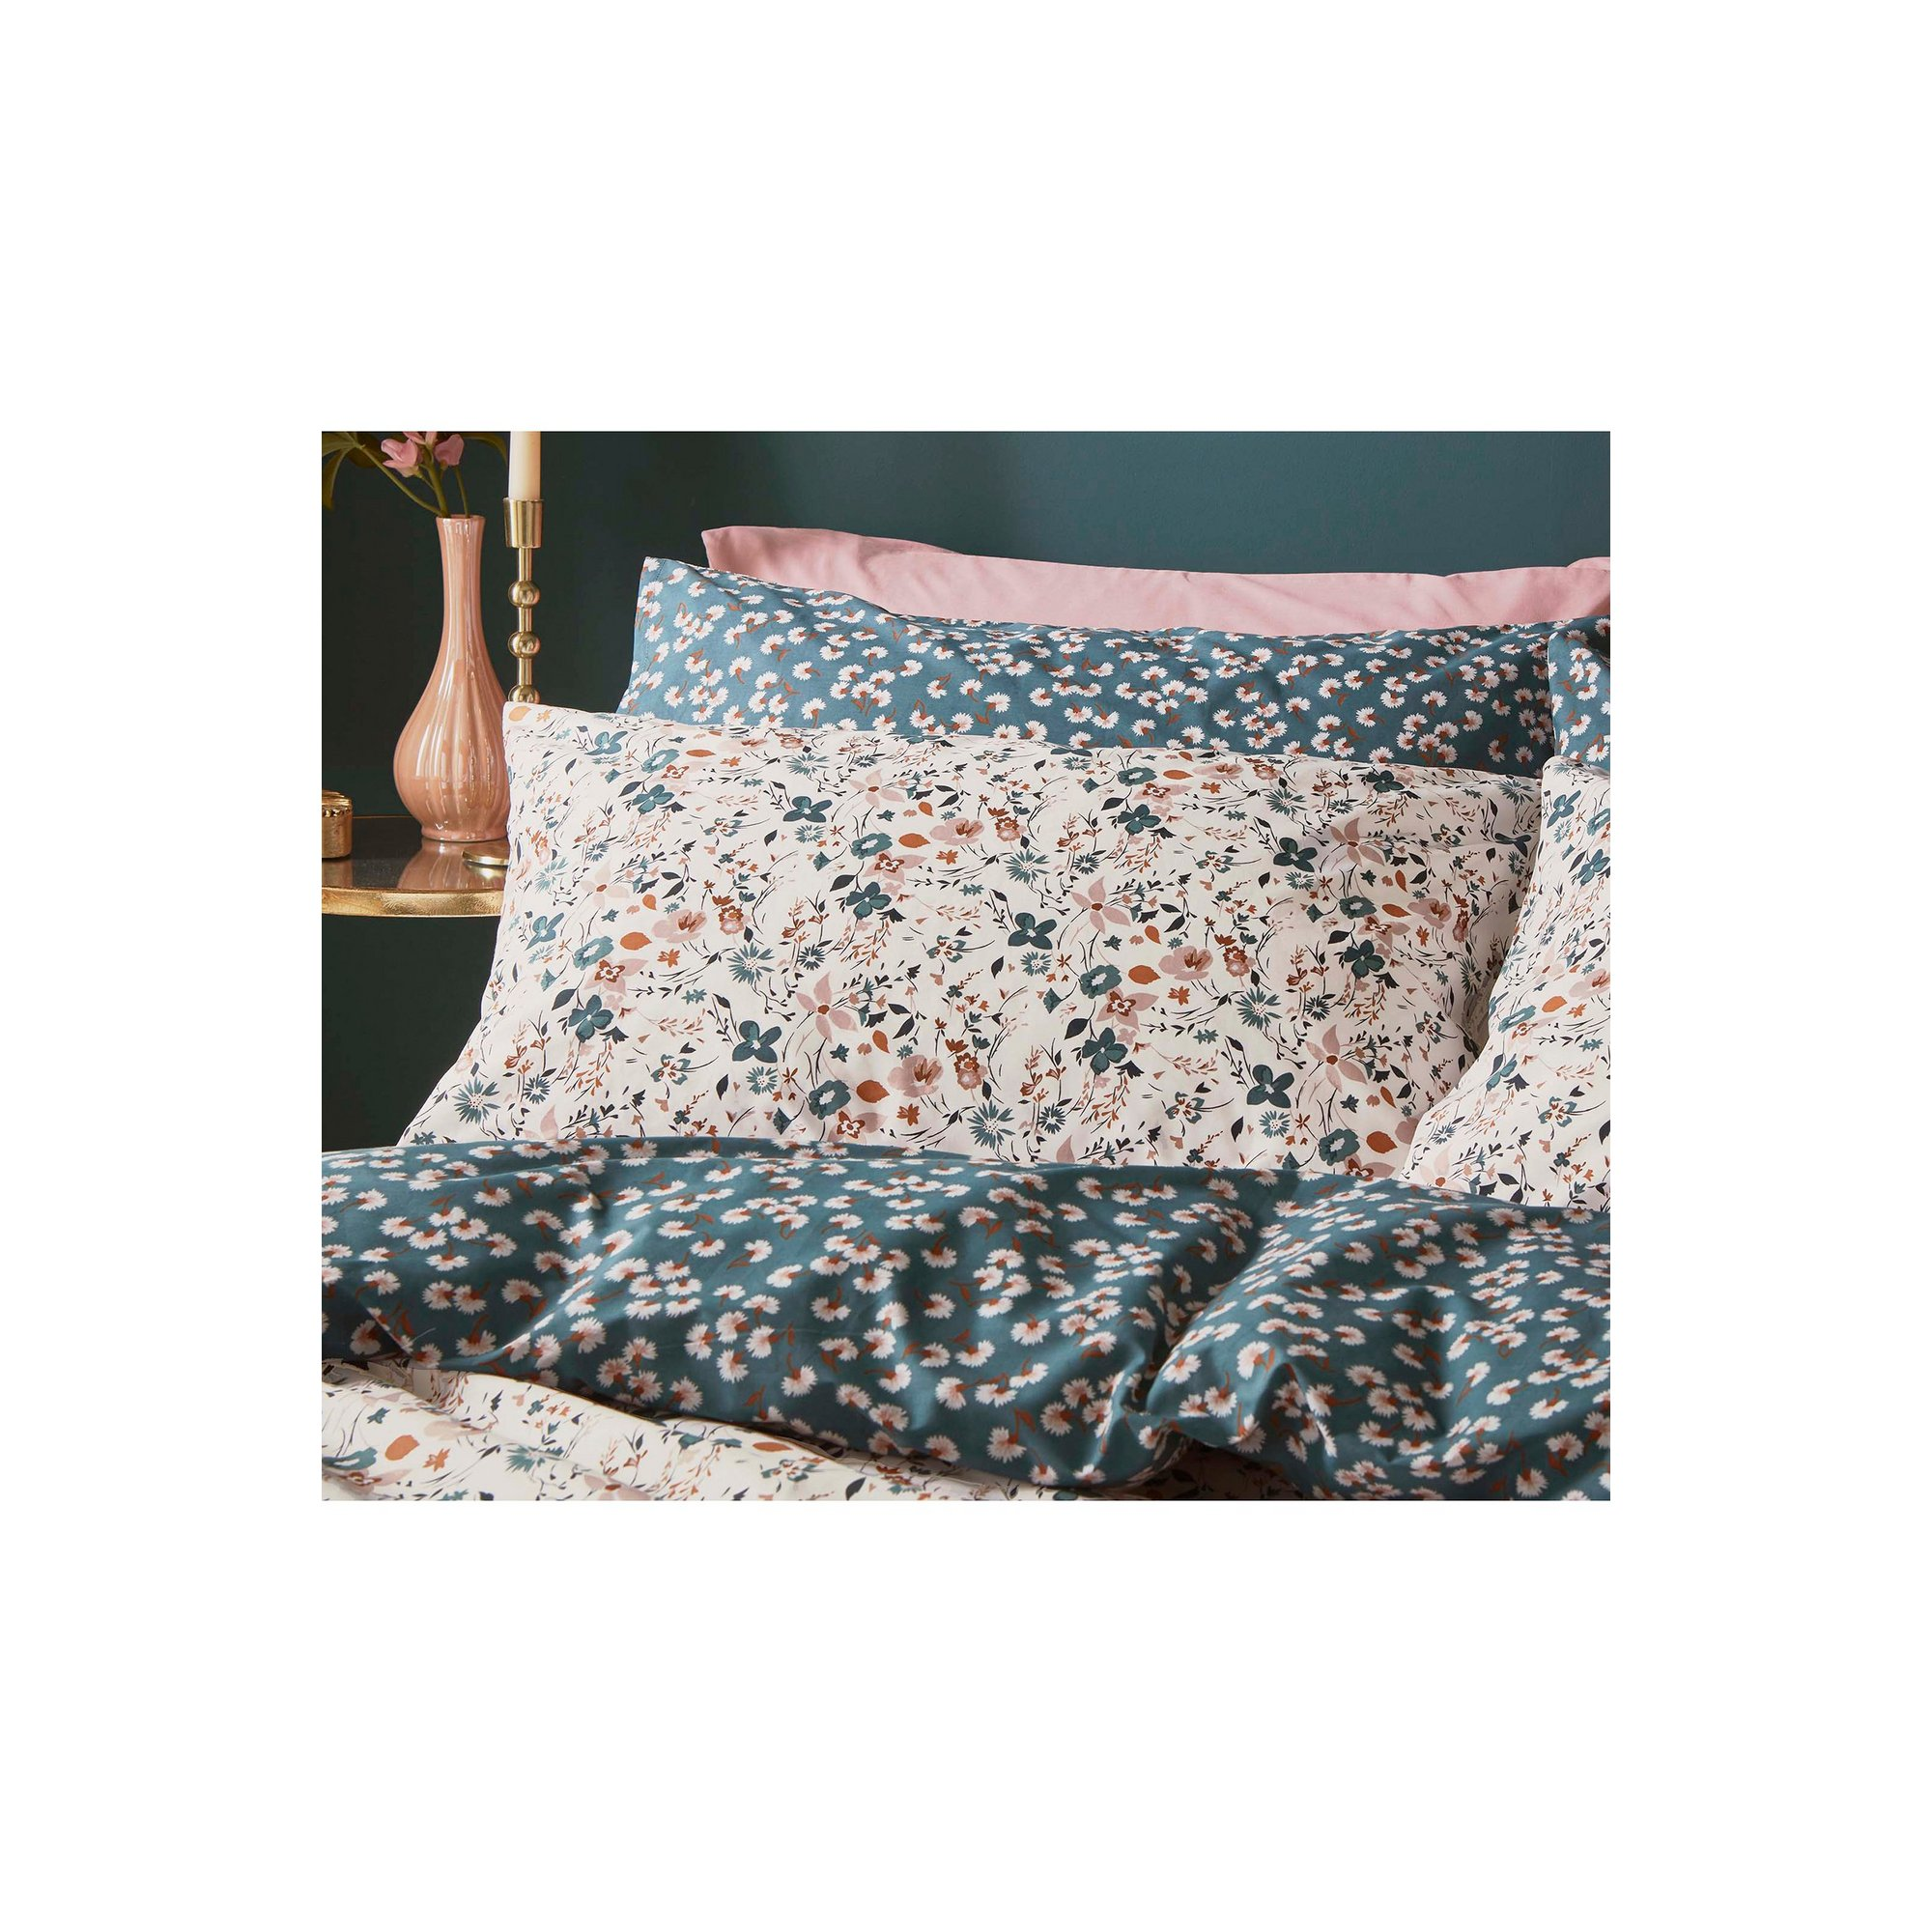 Image of Pair of Fat Face Floating Blooms Standard Pillowcases